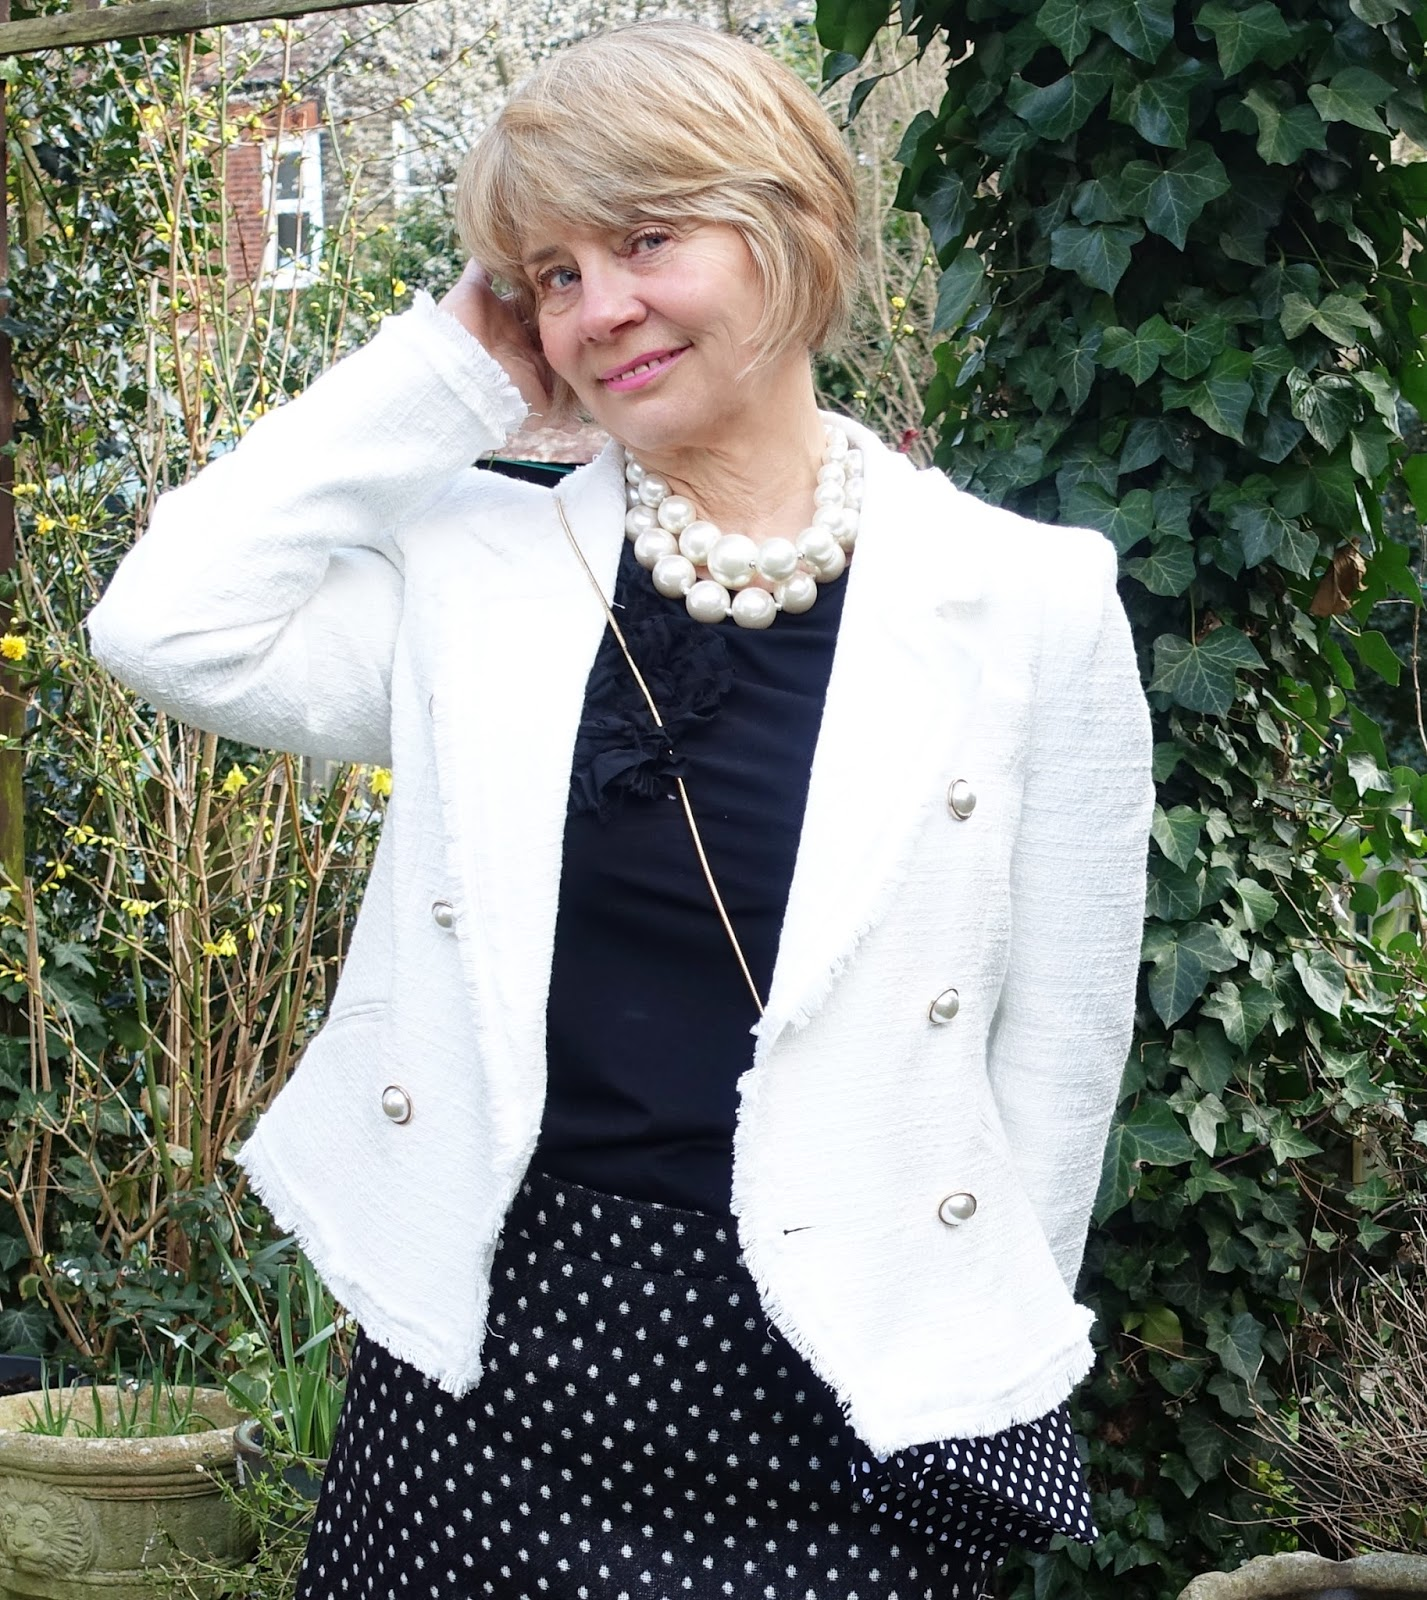 Image showing a woman in a white boucle jacket with a polka dot above the knee skirt and pearl necklaces